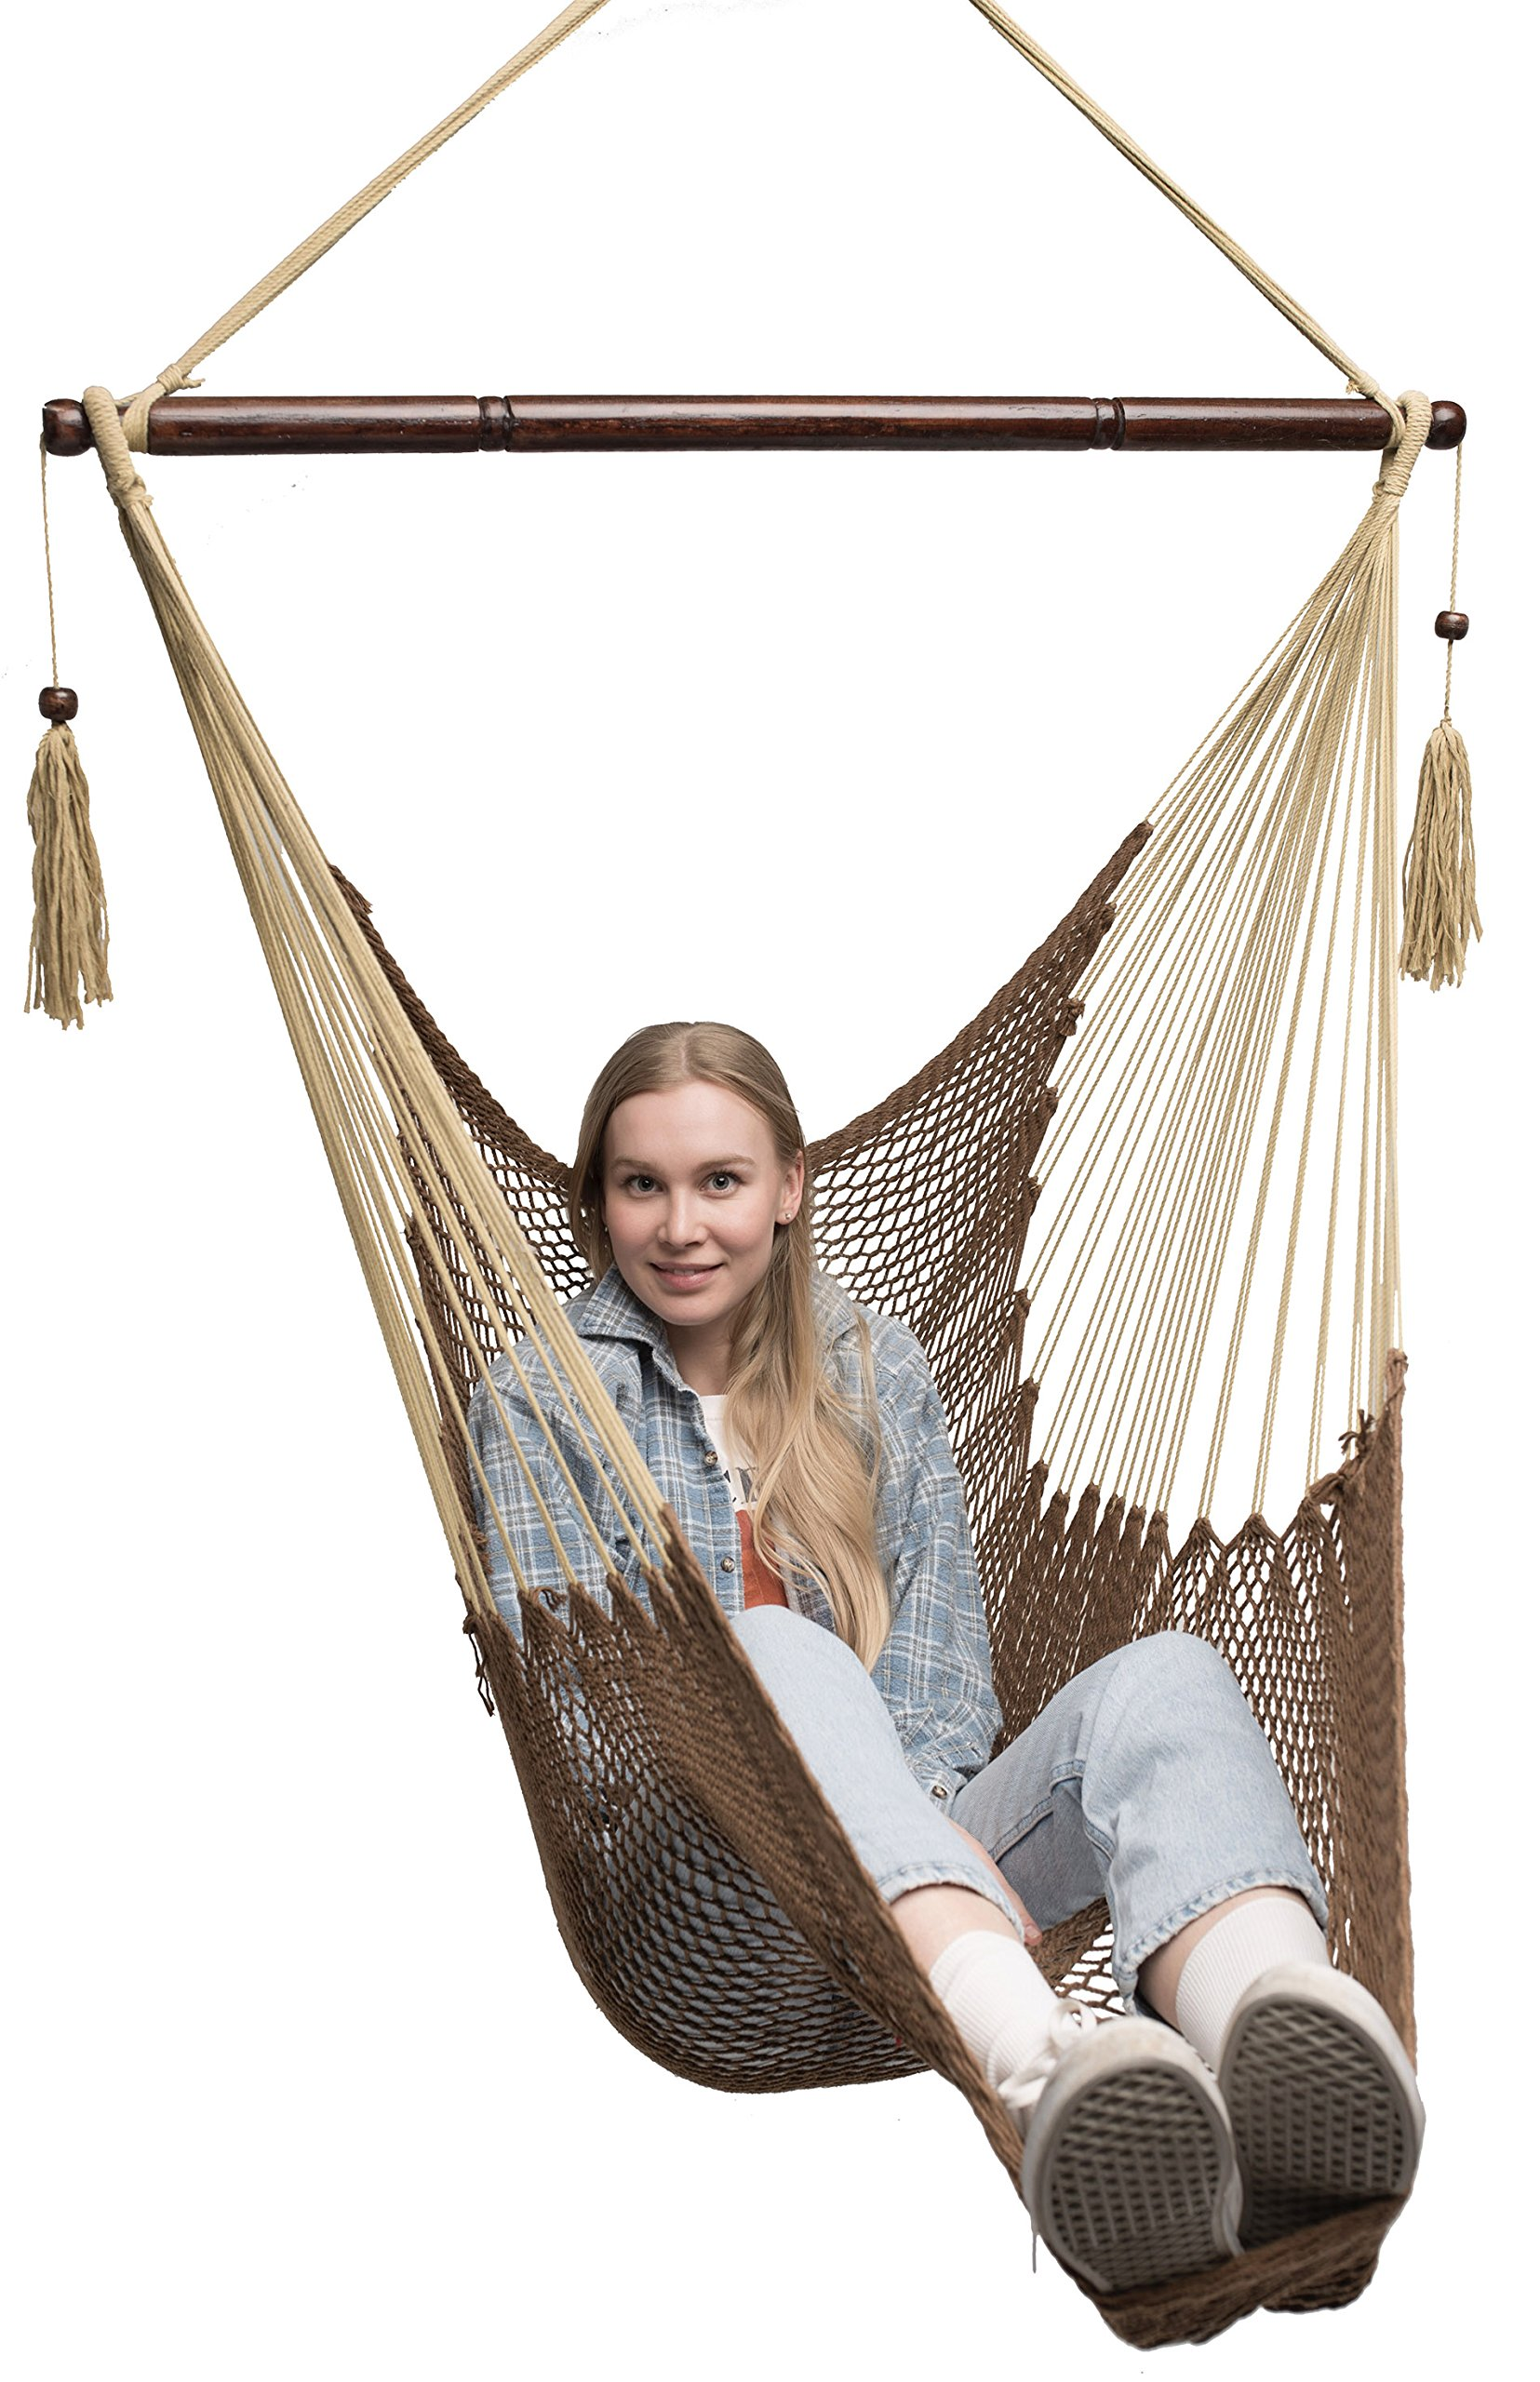 home swingstands chair outdoor also and designs agreeable stand hhswsl modern swing images dfohome chairs hammock swings steel for